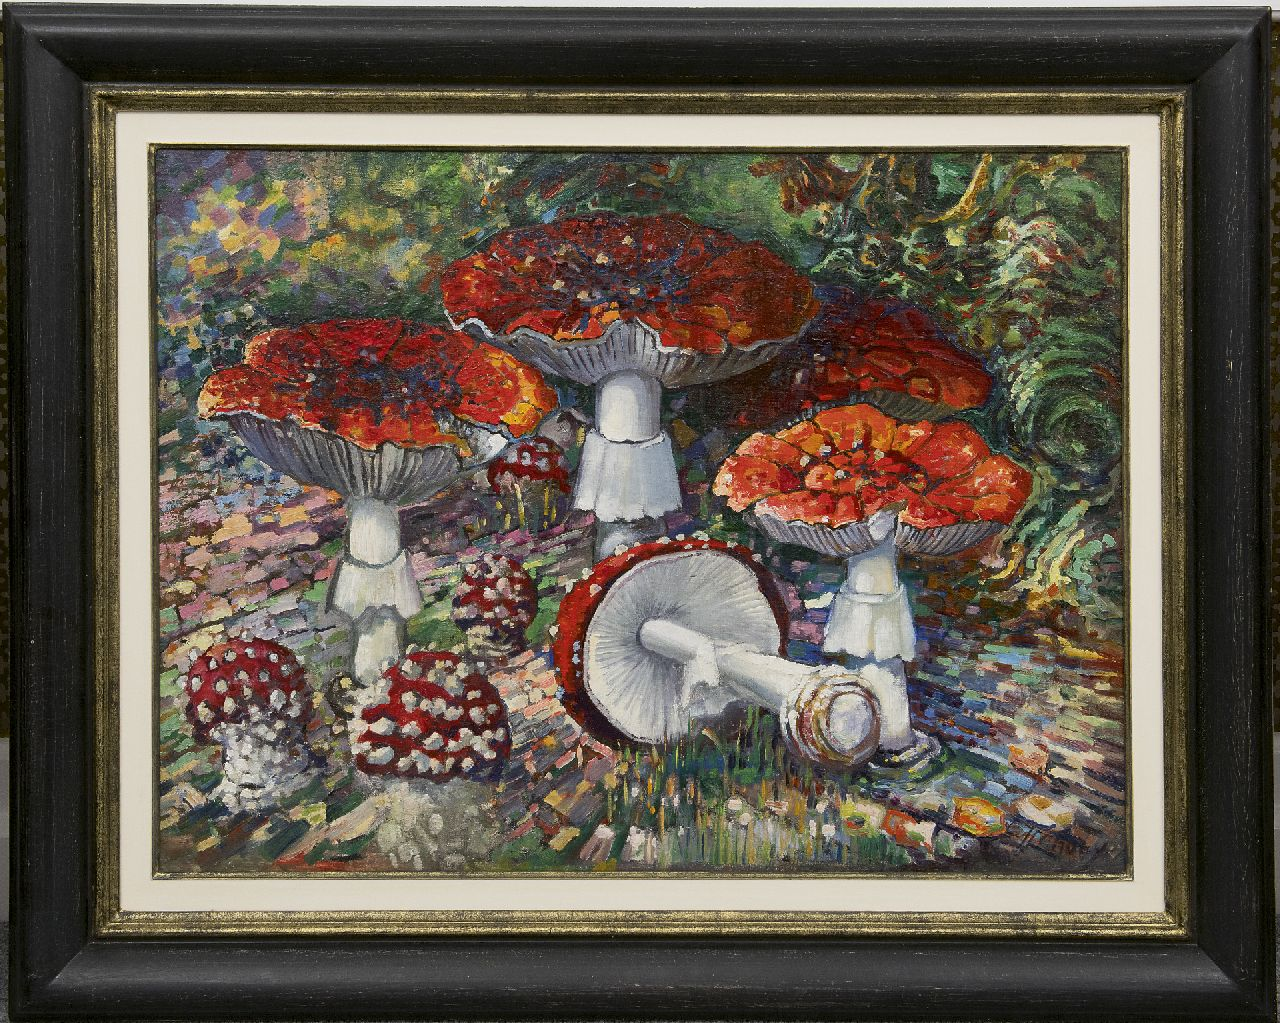 Lanooy C.J.  | Christiaan Johannes 'Chris' Lanooy, Fly agaric mushrooms, oil on canvas laid down on board 52.2 x 68.7 cm, signed l.r.